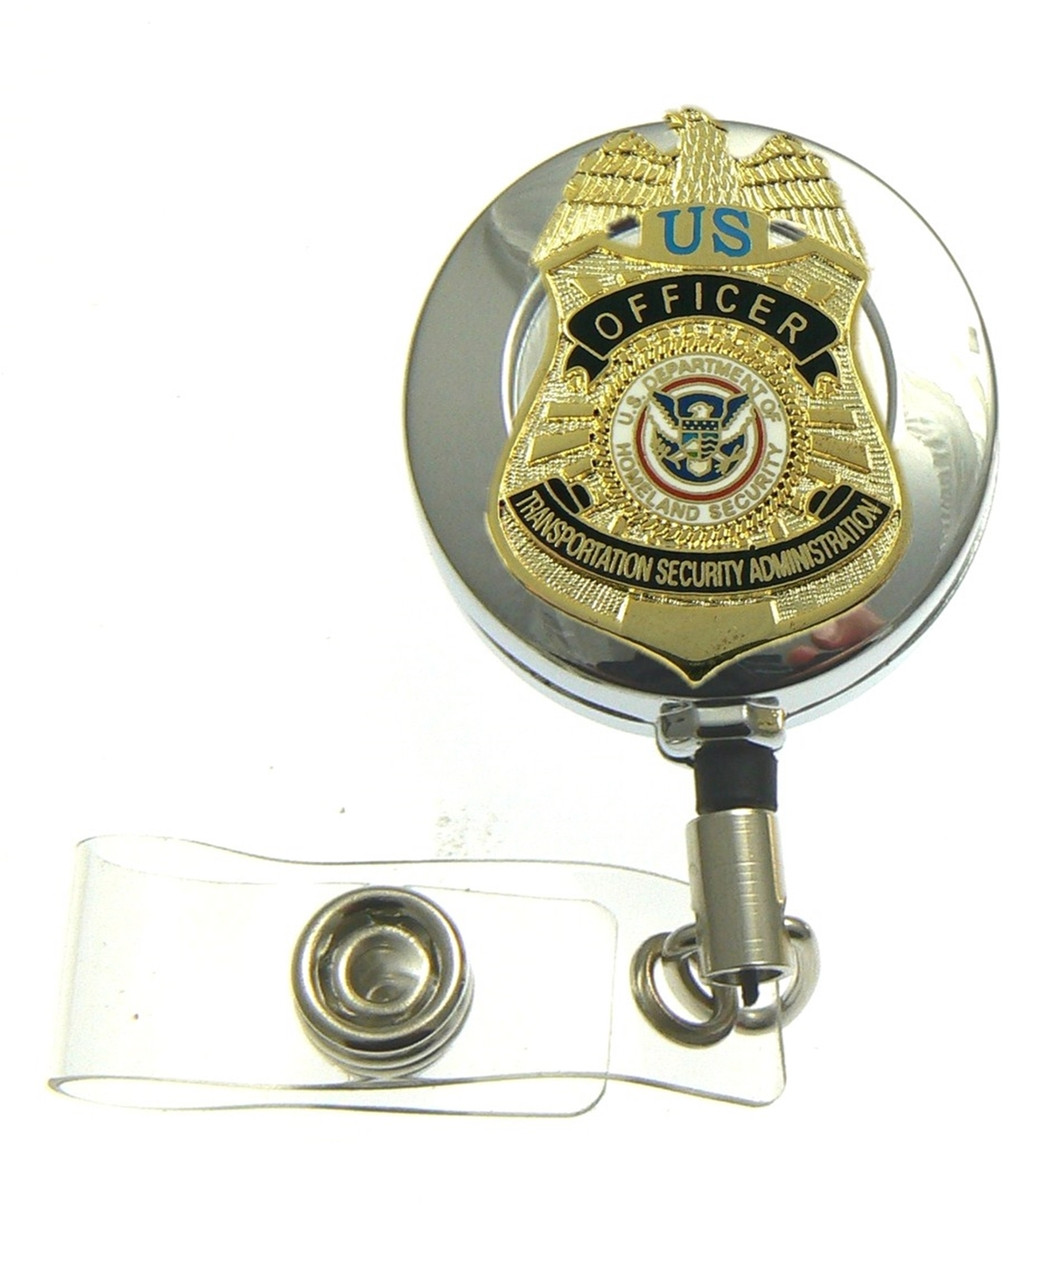 TSA Officer Mini Badge Retractable ID Reel Badge Holder